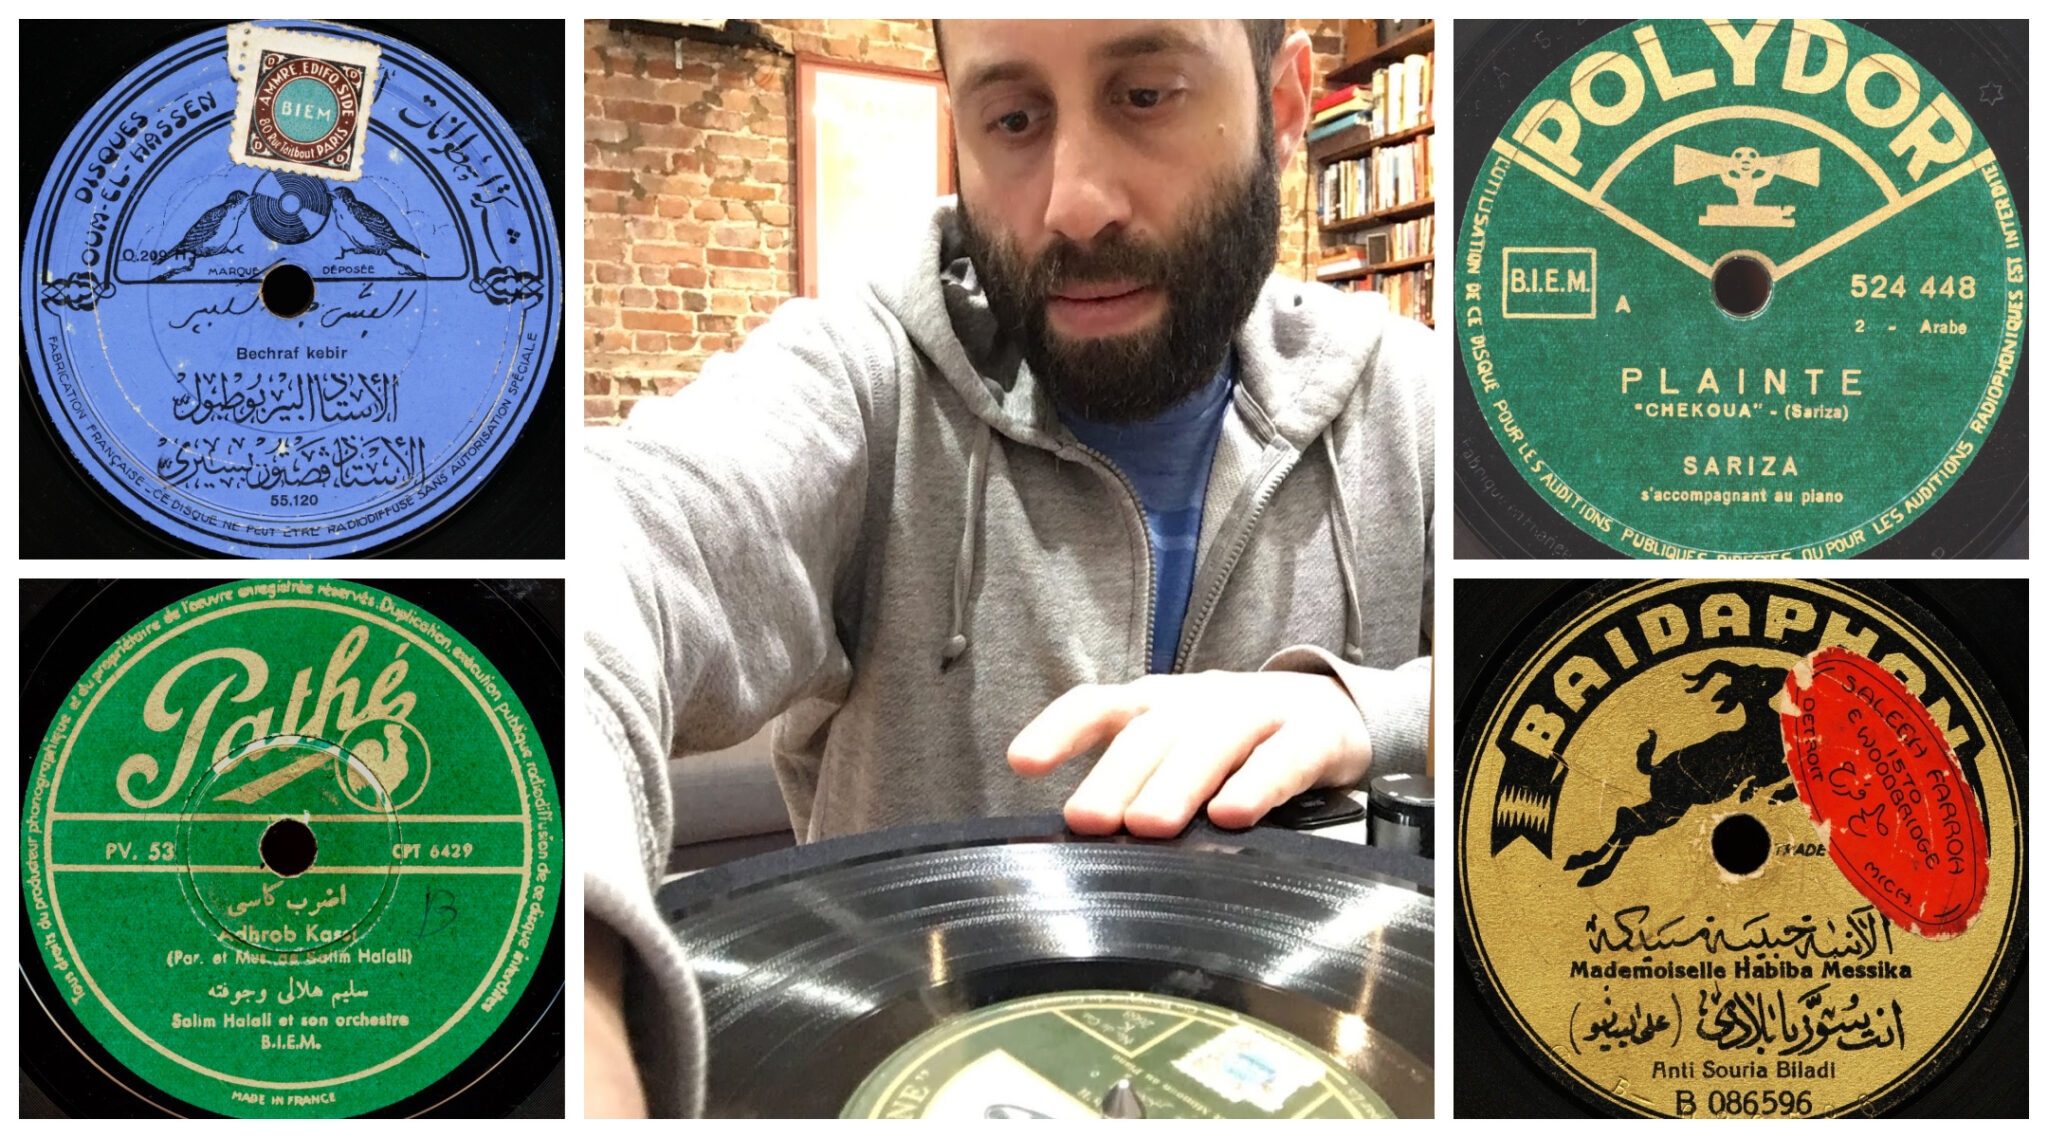 Chris Silver, a professor of Jewish History at McGill University, collects records from around the world for the first archive of North African Jewish music, currently housed in his apartment in Montreal.